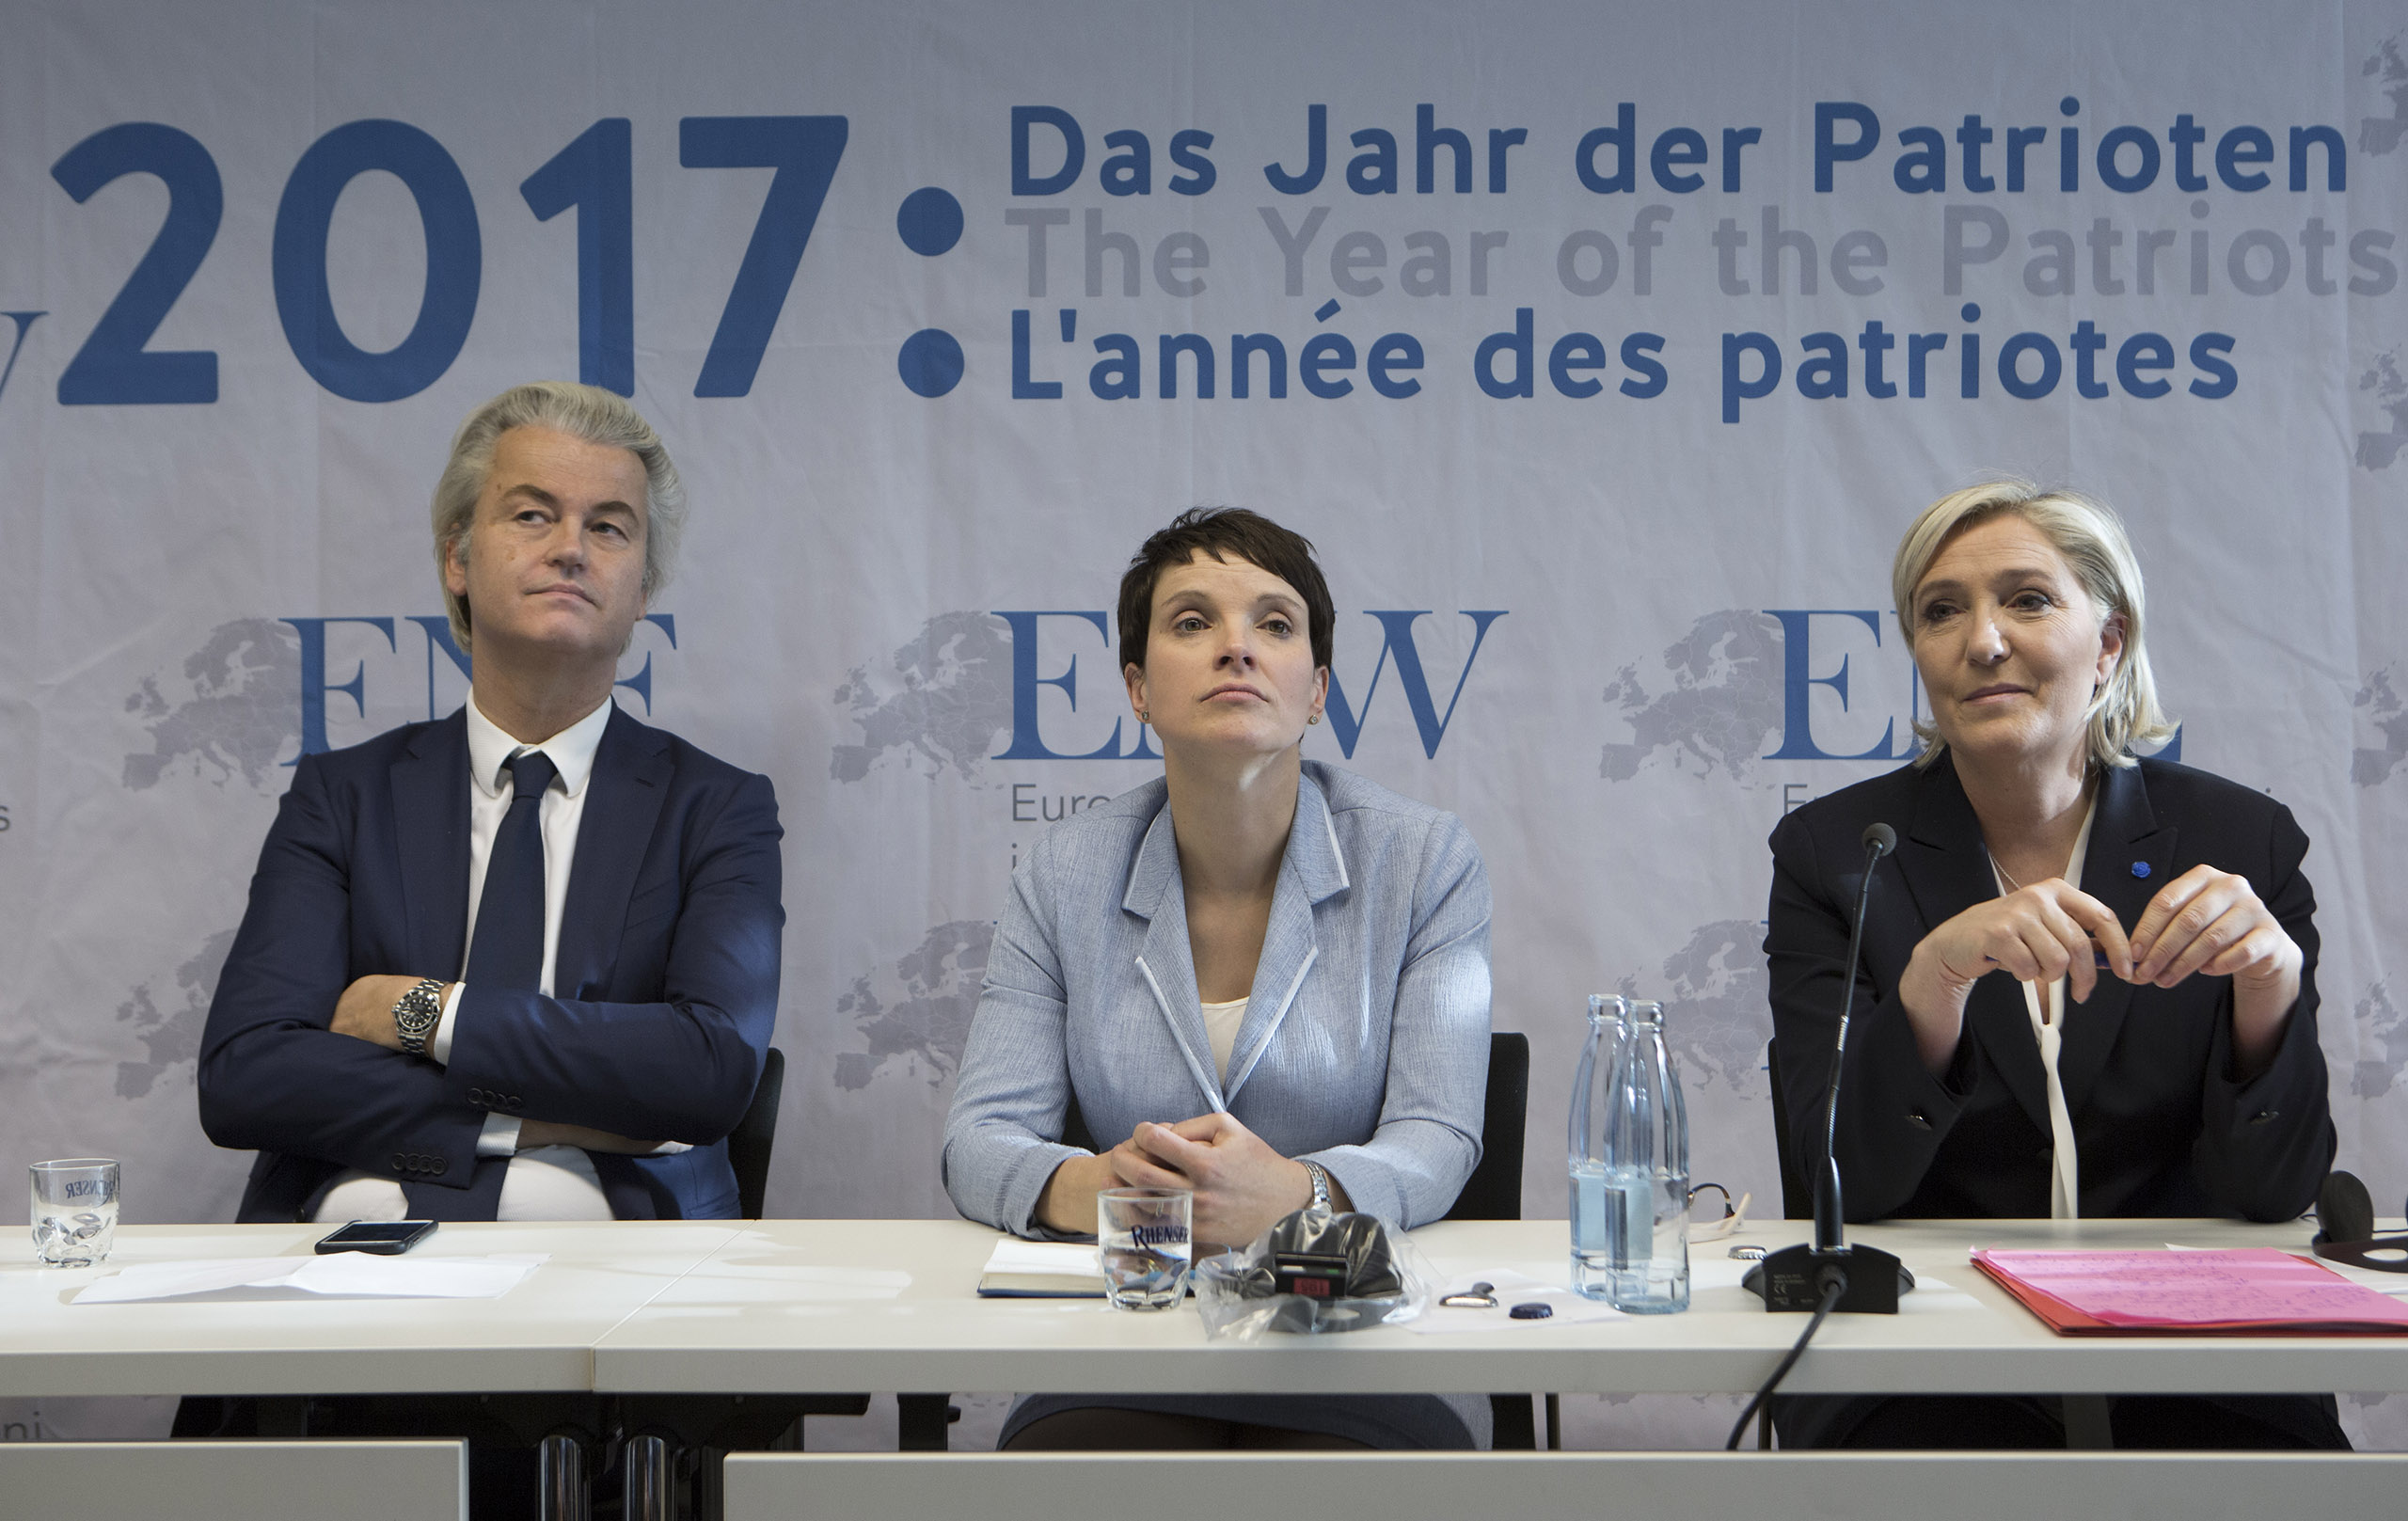 From left: Geert Wilders, chairman of the Dutch Party of Freedom; Frauke Petry, chairwoman of the Alternative for Germany party; and Marine Le Pen, chairwoman of the French National Front, attend a press conference in Koblenz, Germany, on Jan. 21, 2017